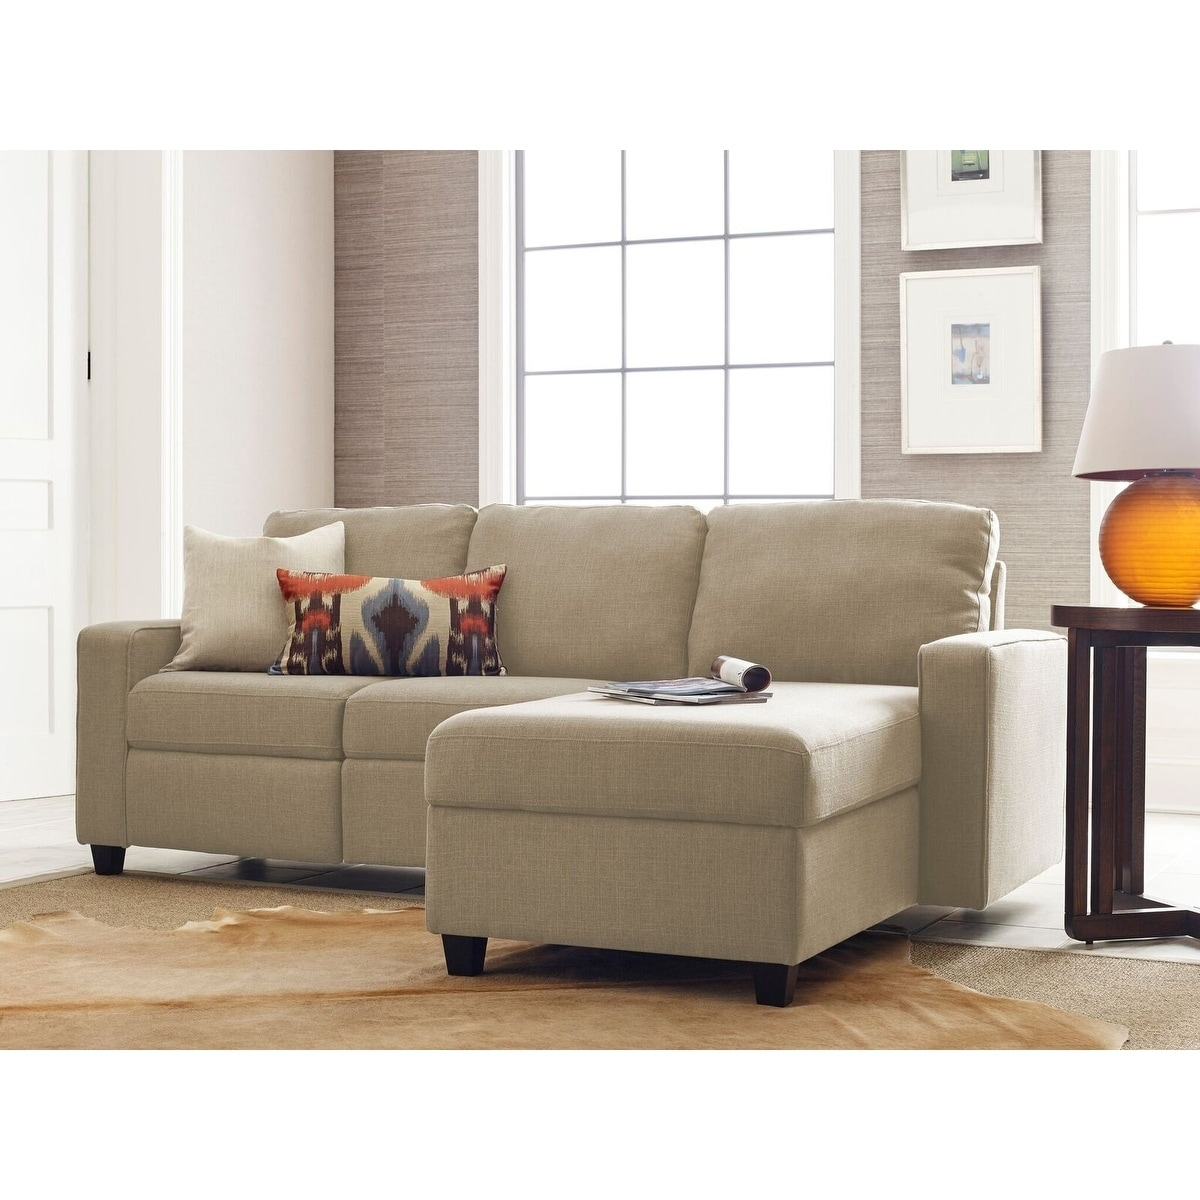 on sale f31de b28f6 Serta Palisades Reclining Sectional with Right Storage Chaise